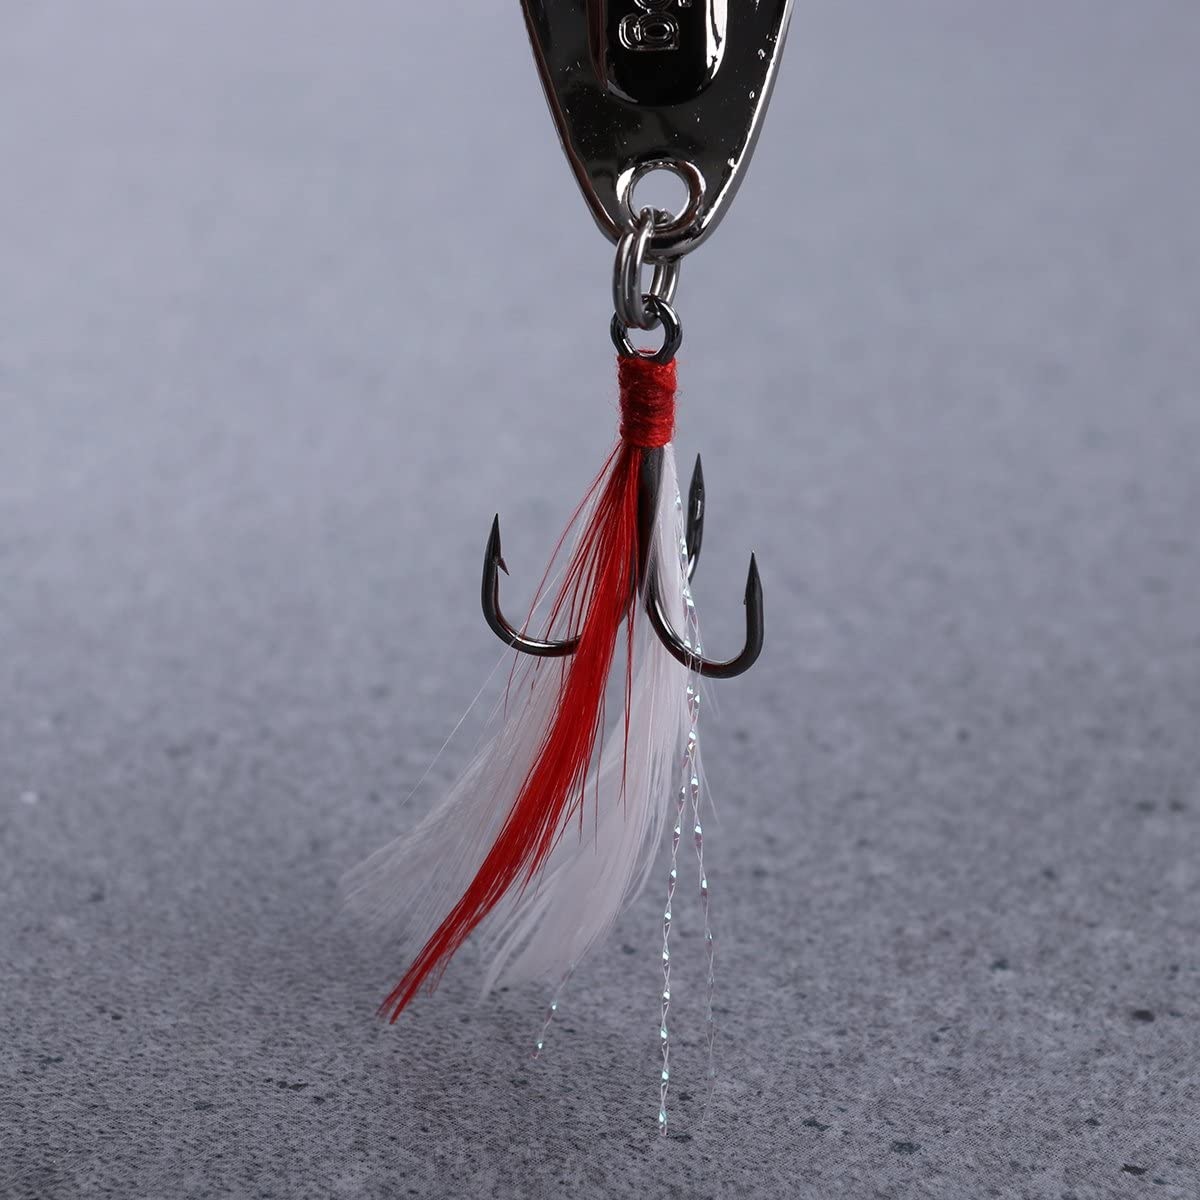 5pcs Spoons Hard Fishing Lures Treble Hooks Metal Fishing Lure Baits Fishing Accessories Silver Lure + Red Feather